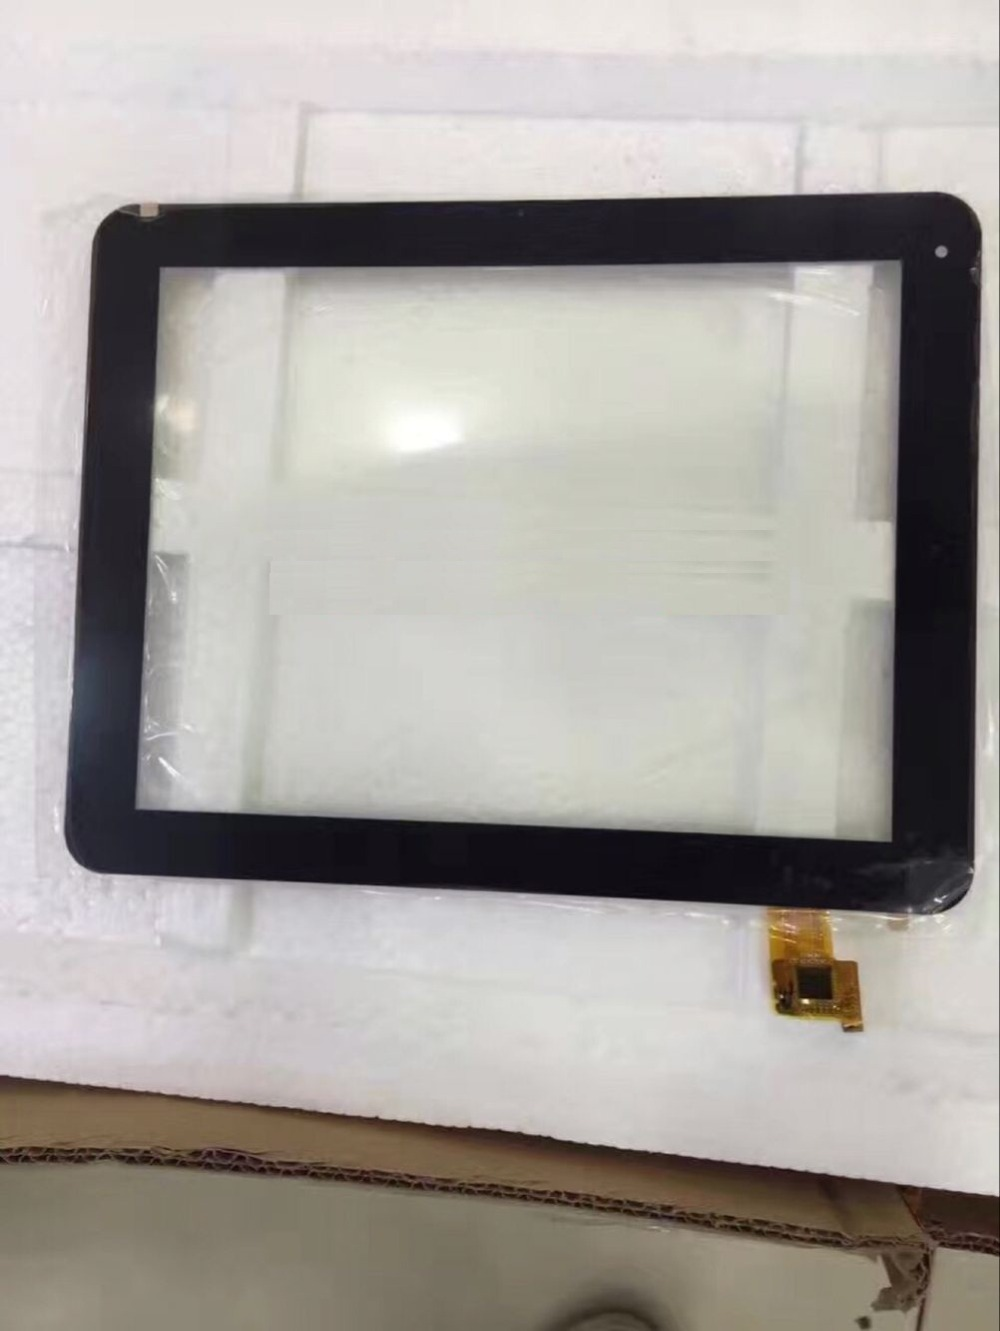 9.7 touch panel For Bliss Pad R9733 Tablet touch screen panel Digitizer Glass Sensor Replacement Free Shipping new capacitive touch screen touch panel digitizer glass replacement for 9 7 bliss pad r9720 bpr9720 tablet free shipping